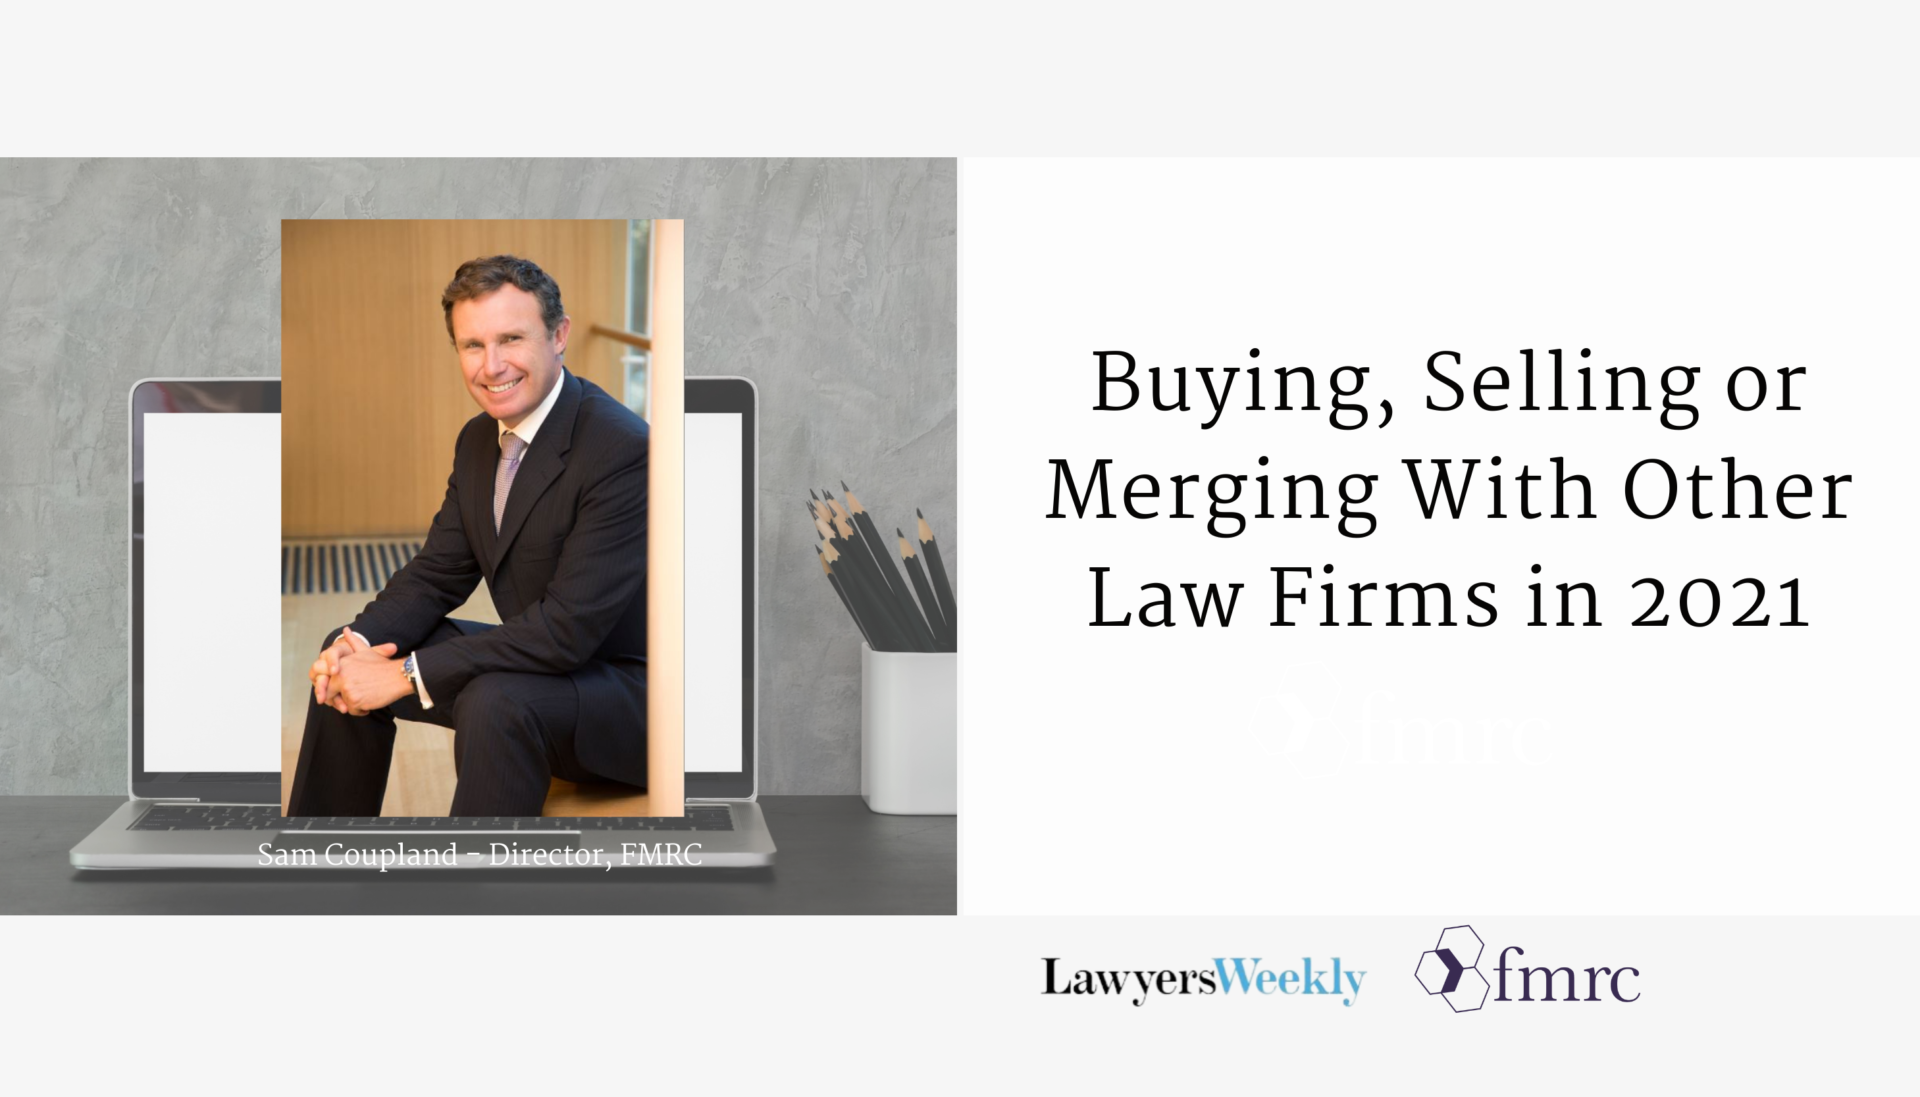 Buying, Selling or Merging With Other law Firms in 2021